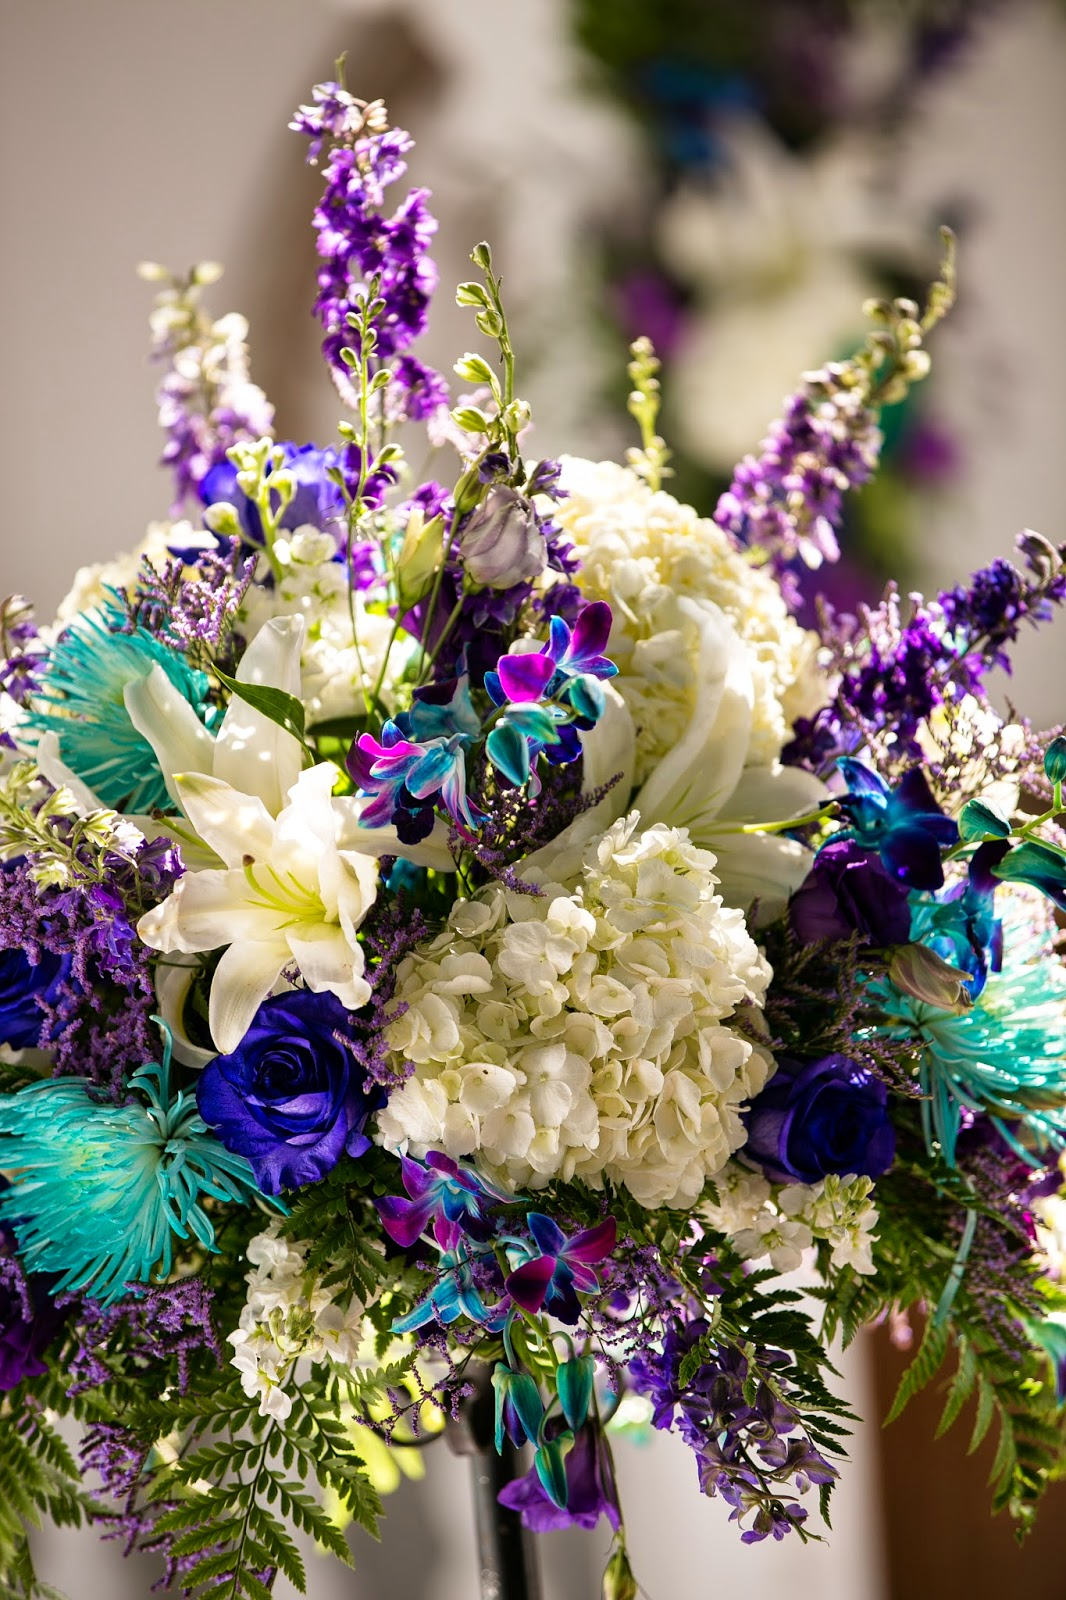 Color combinations blue and purple mfg floral designs and events there are tons of color combinations that you wouldnt think of until you see them together like these purples and blues you cant help but feel the izmirmasajfo